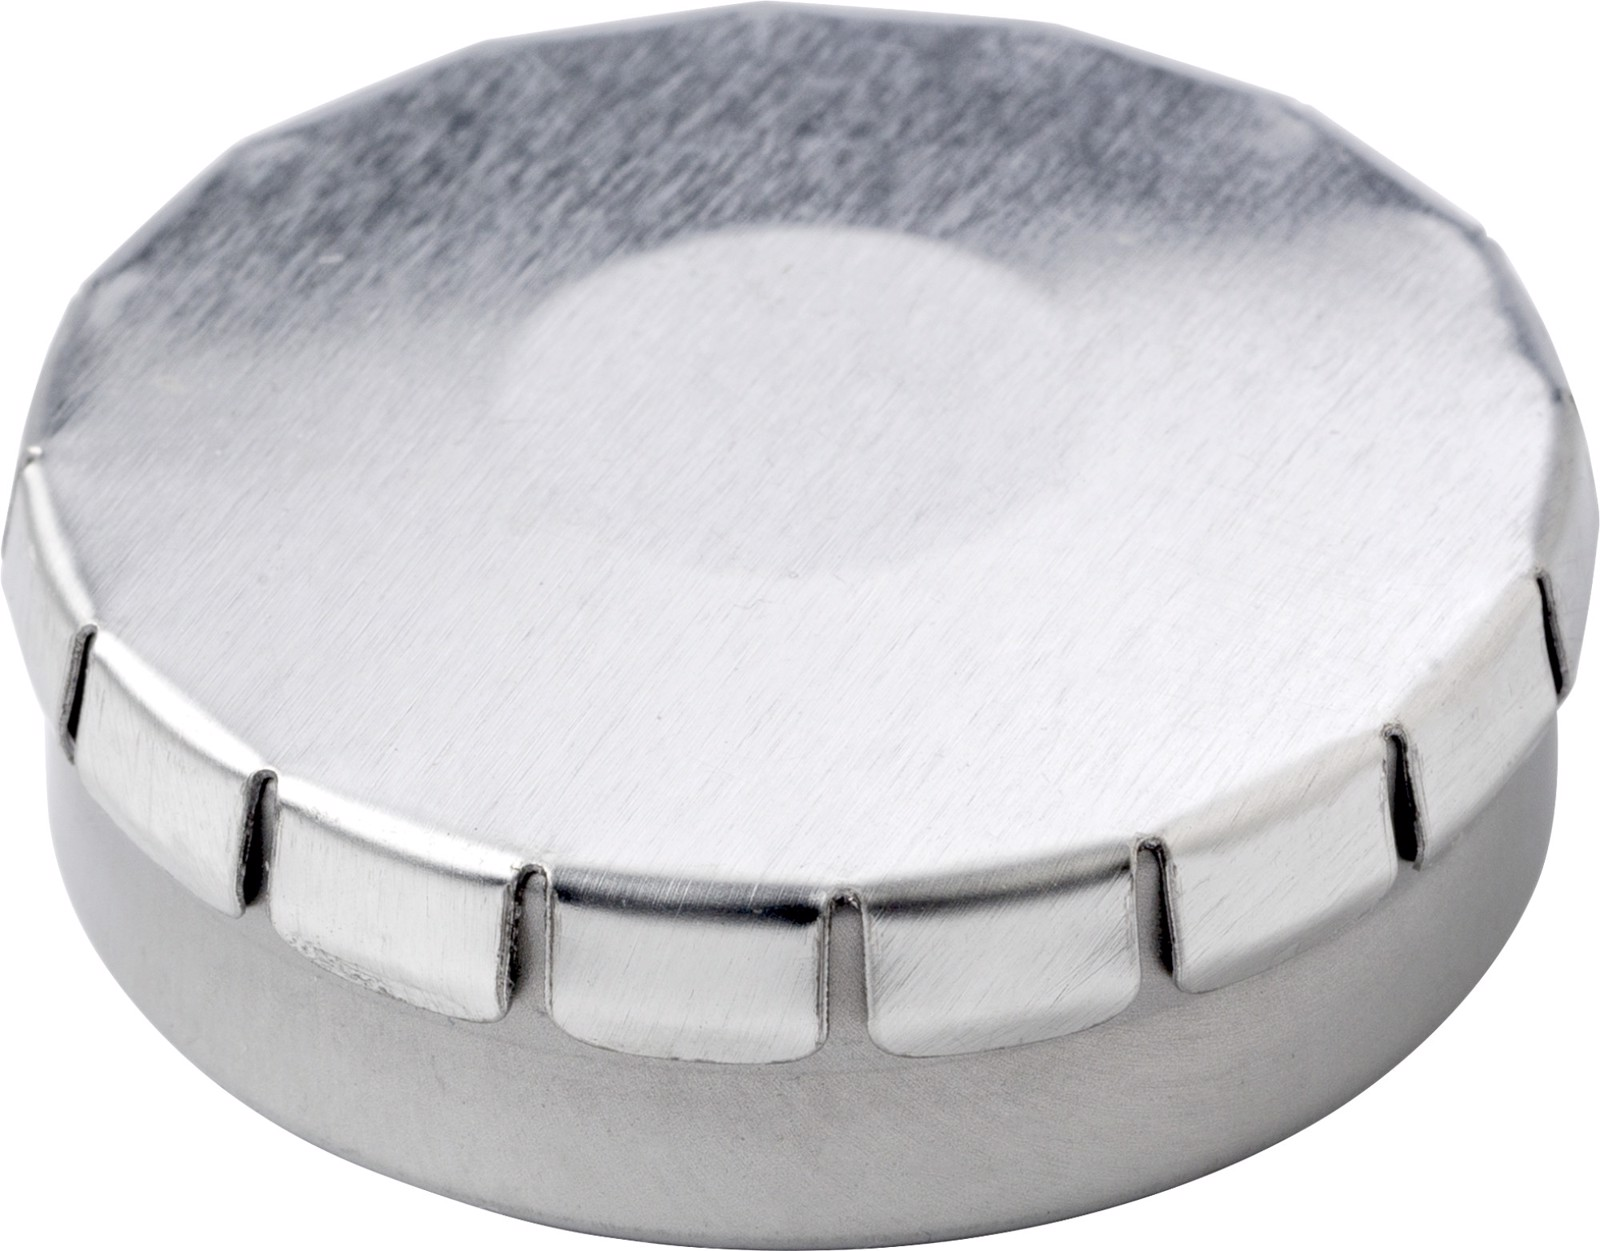 Tin with mints - Silver